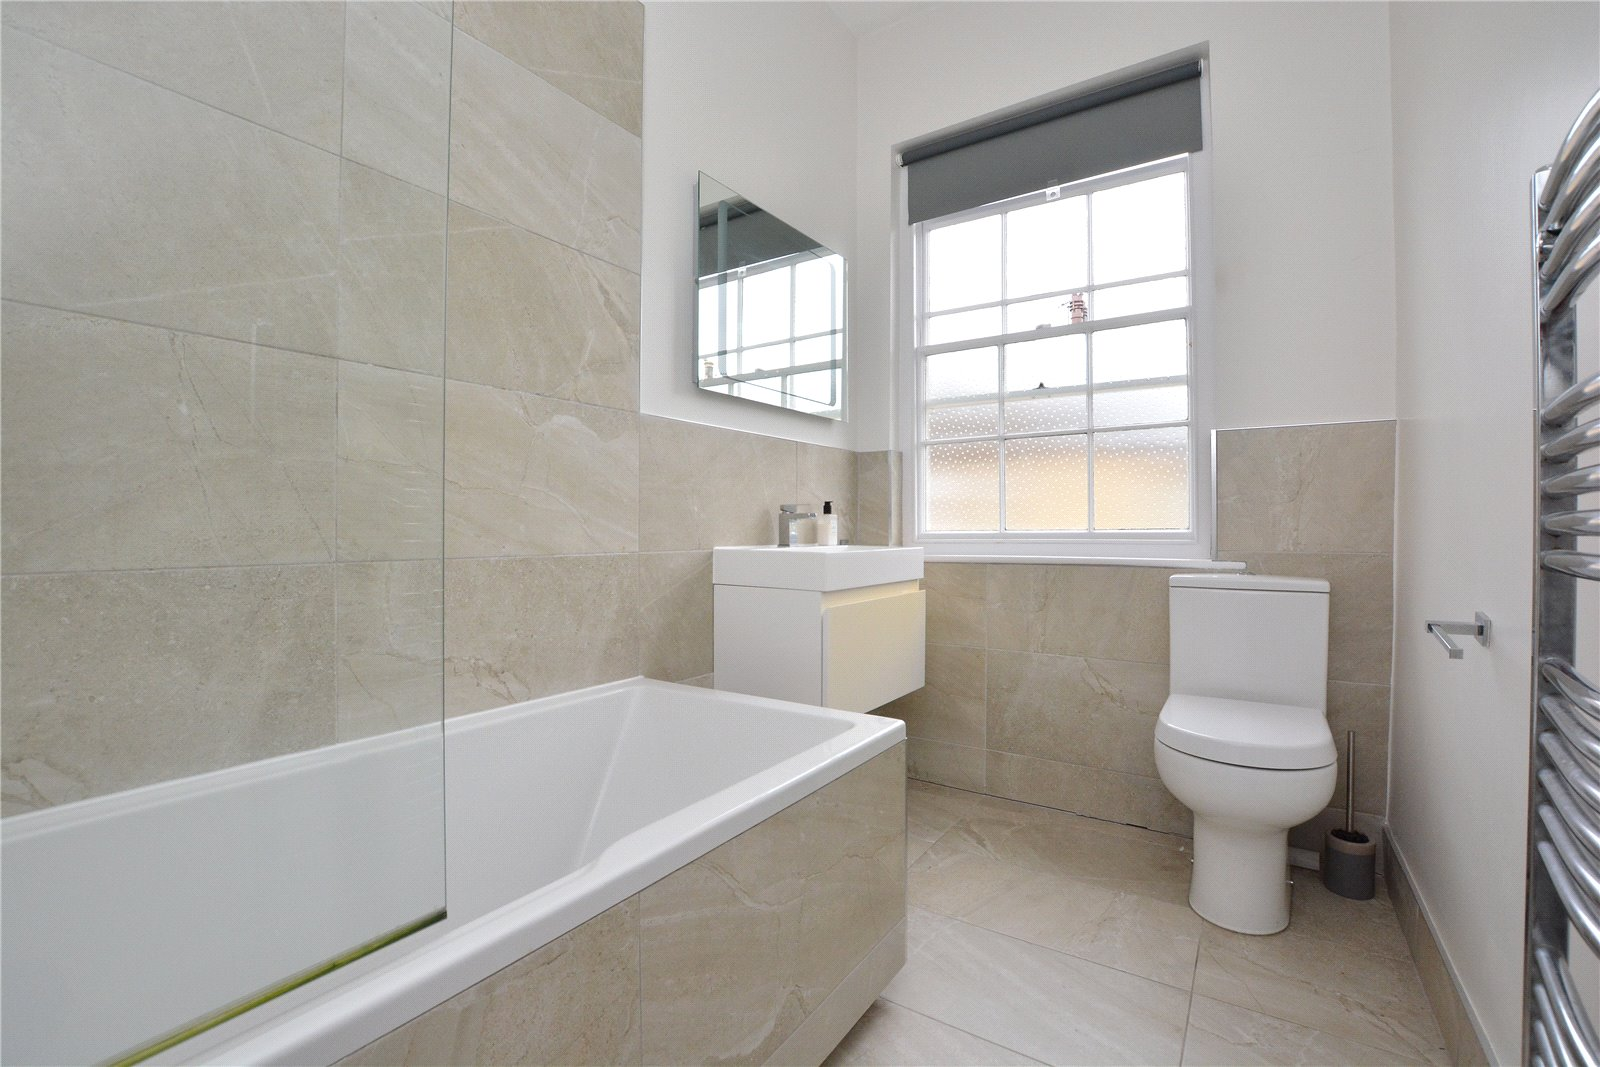 Property for sale in Wetherby, interior fitted bathroom